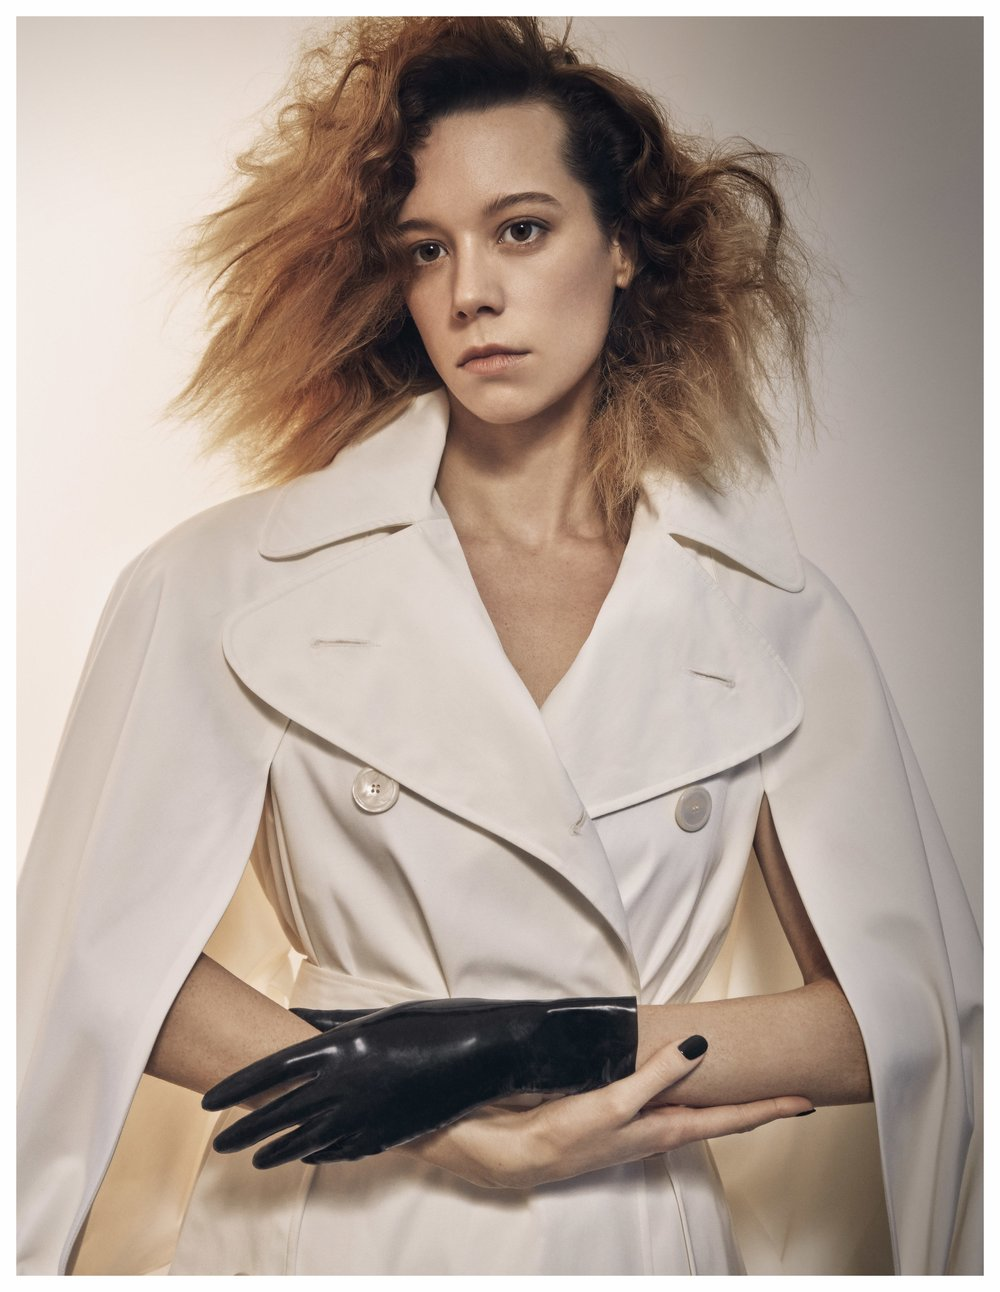 Chloe Pirrie  INTERVIEW US